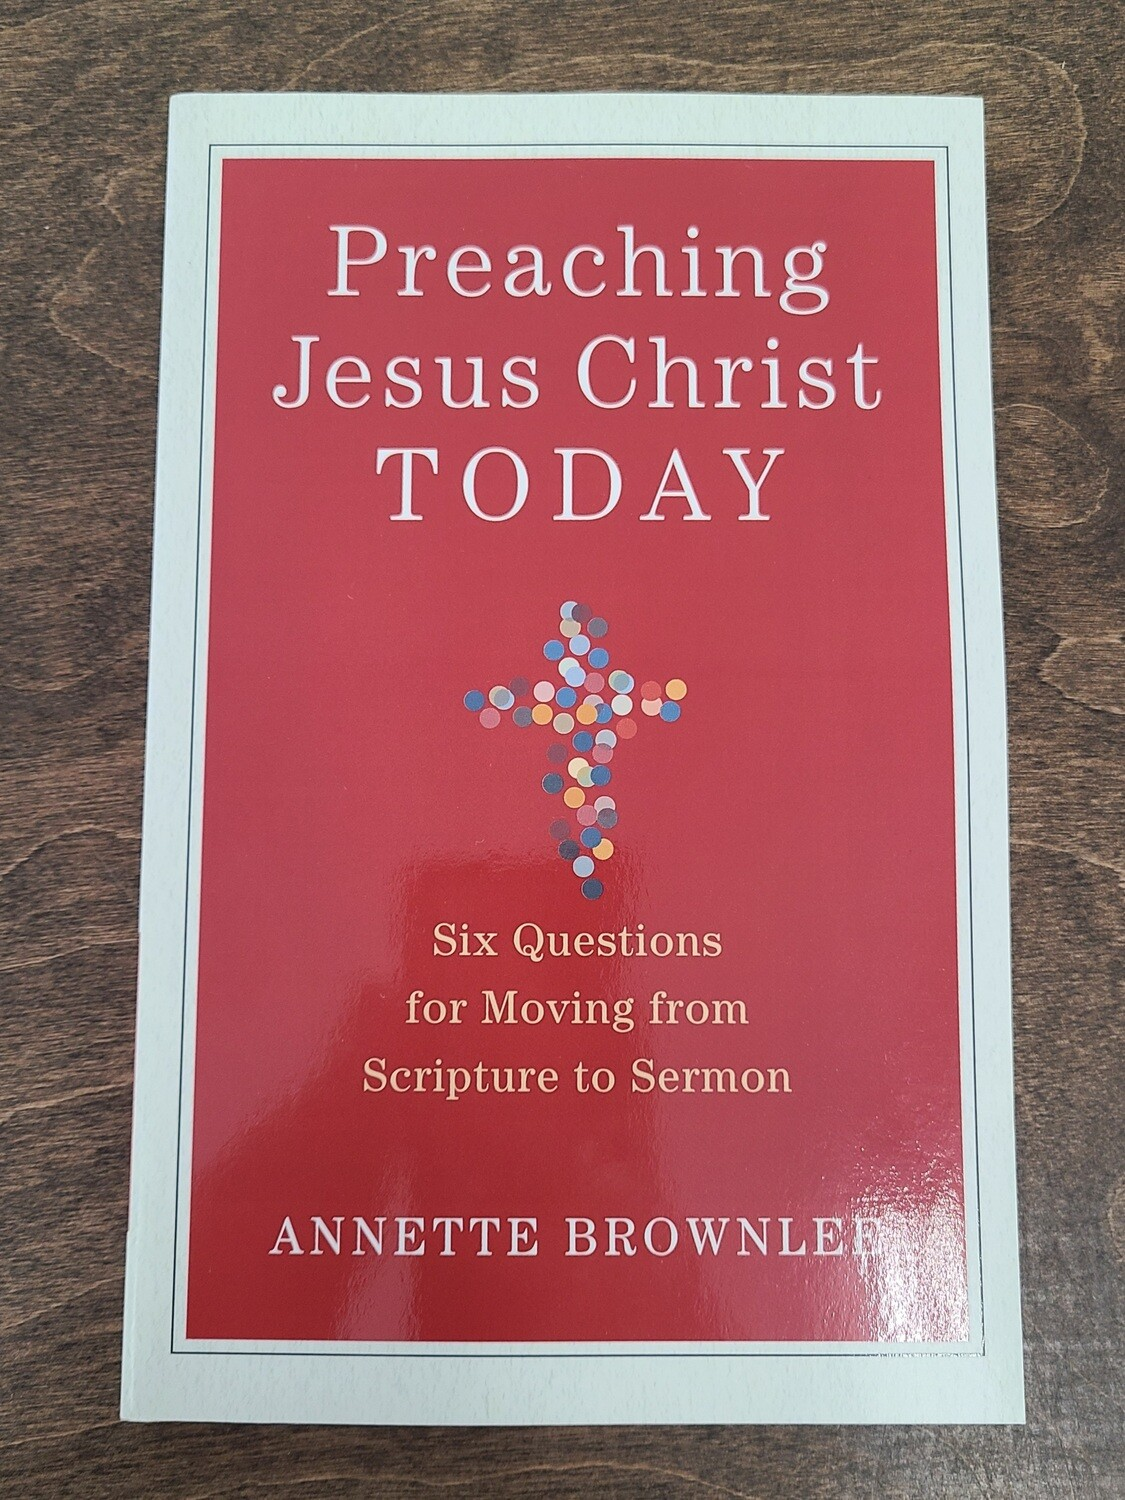 Preaching Jesus Christ Today: Six Questions for Moving from Scripture to Sermon by Annette Brownlee